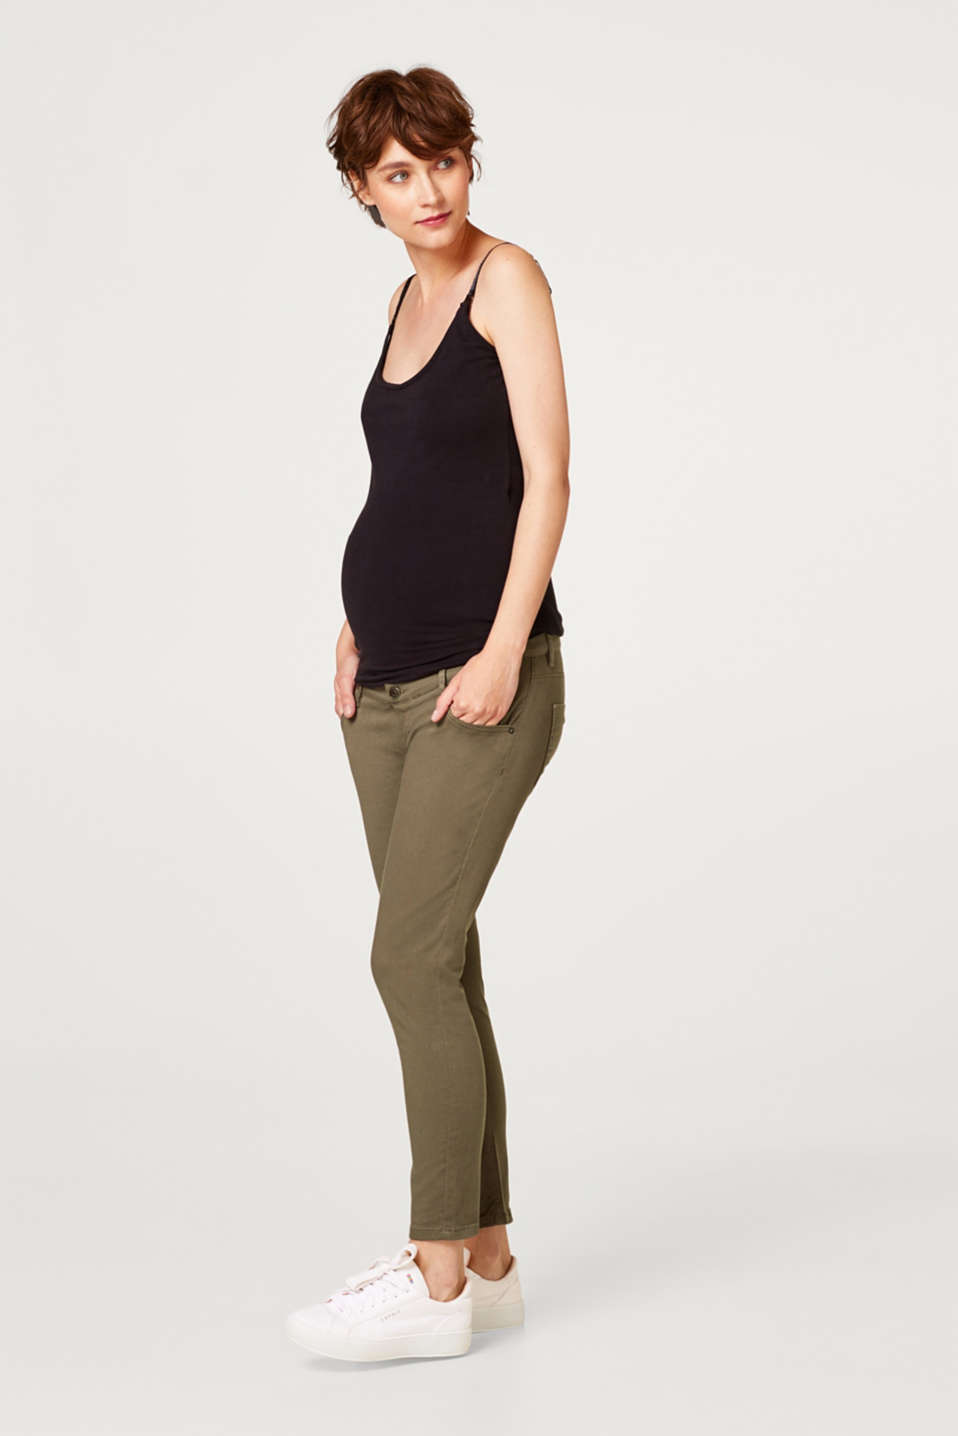 Esprit - Stretch trousers with a versatile over-bump waistband